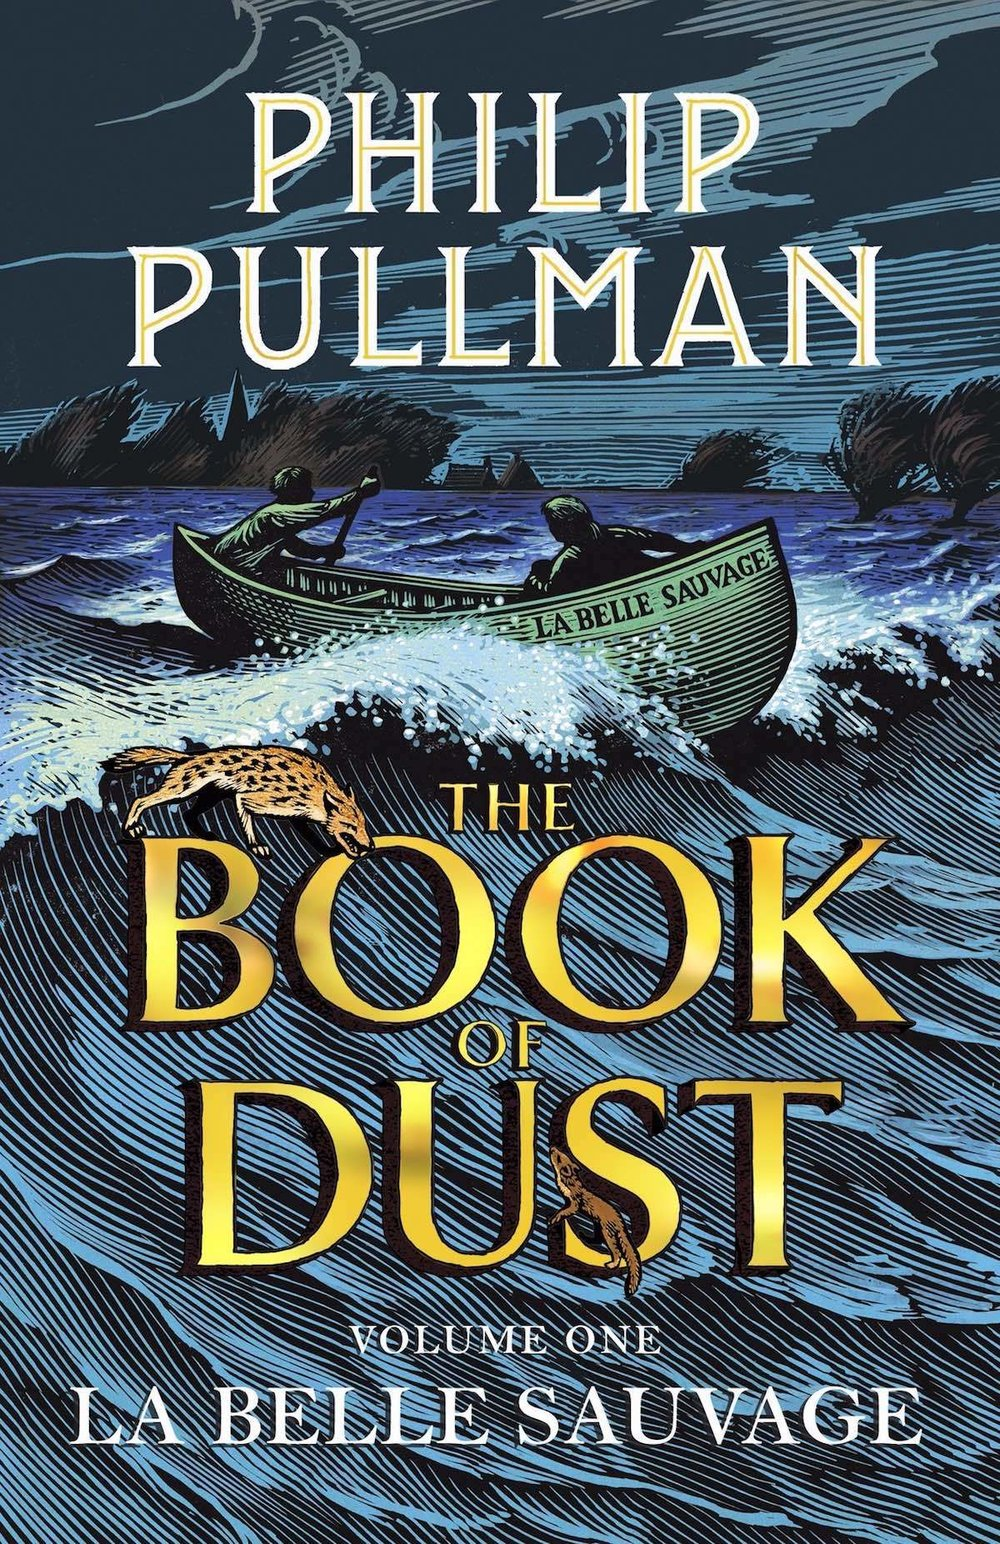 book-of-dust-uk.jpg